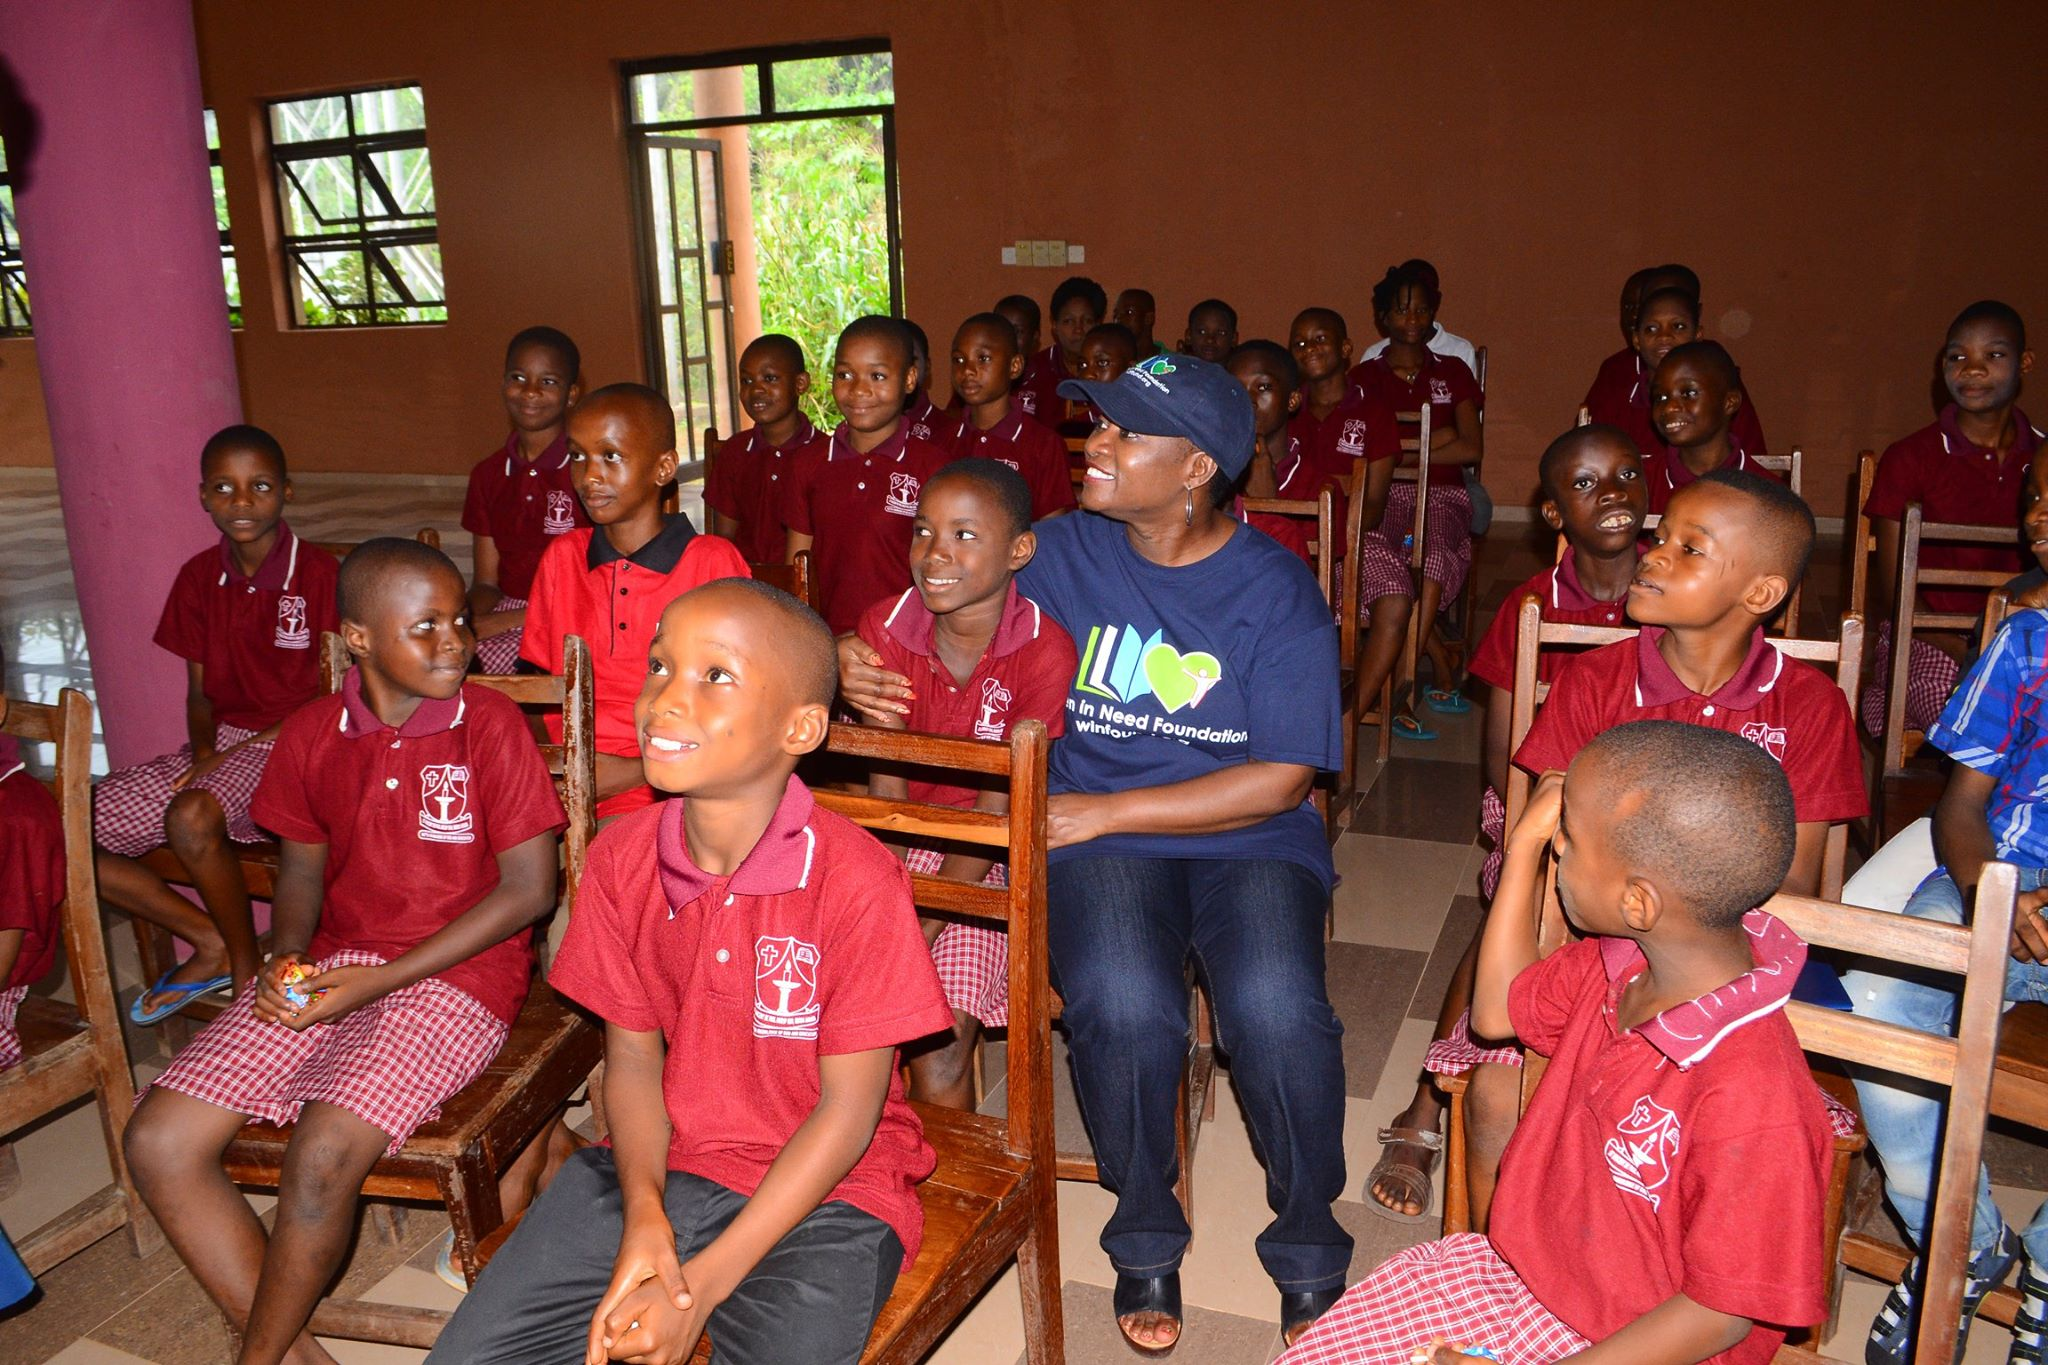 A Day with the children at Daughters of Providence for the Hearing Impaired